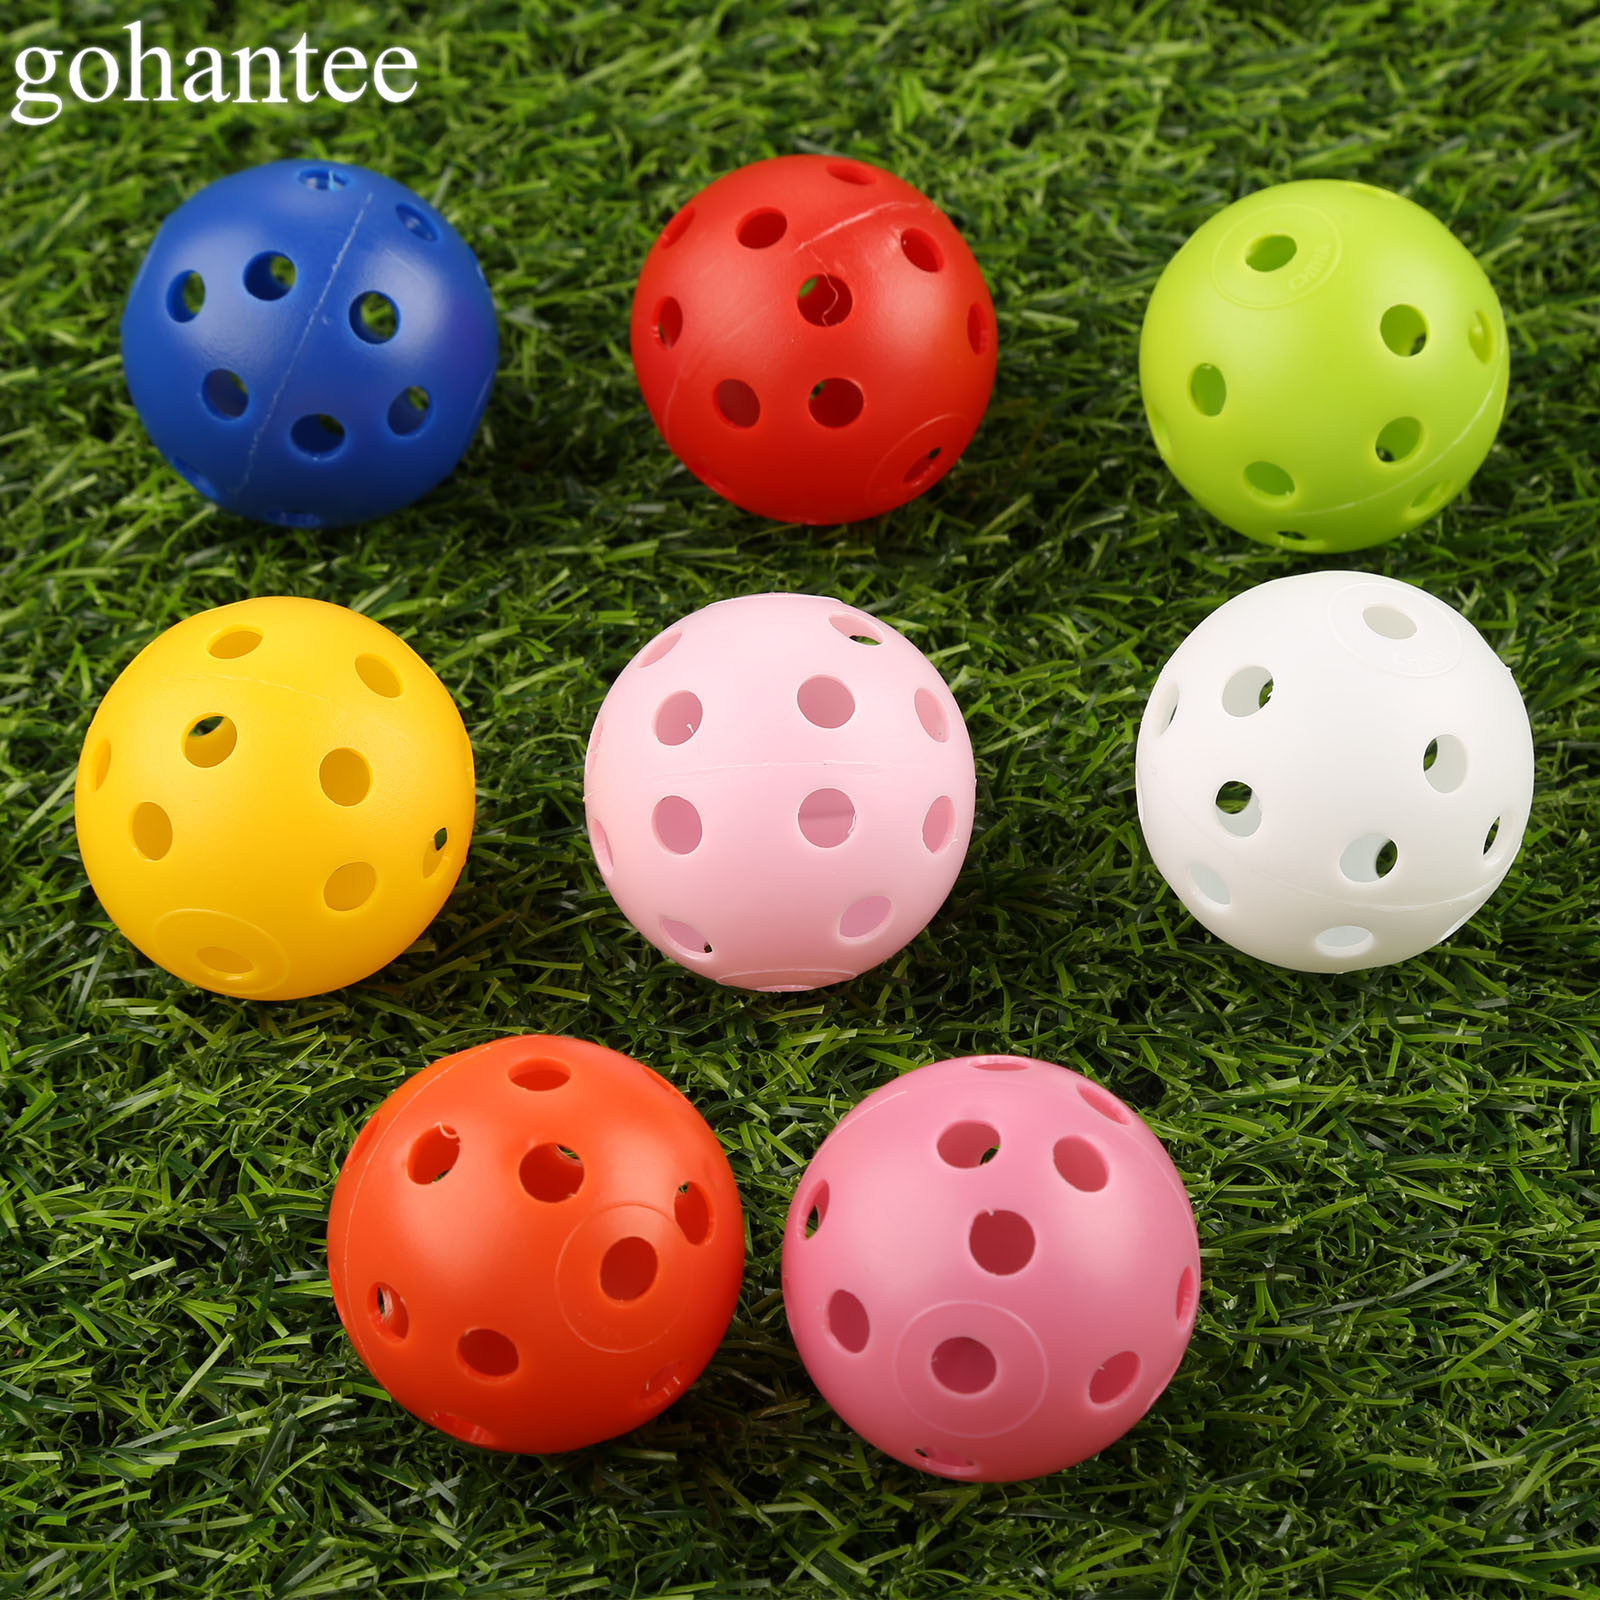 Gohantee 20Pcs 41mm Golf Training Balls Plastic Airflow Hollow With Hole Golf Balls Outdoor Golf Practice Balls Golf Accessories